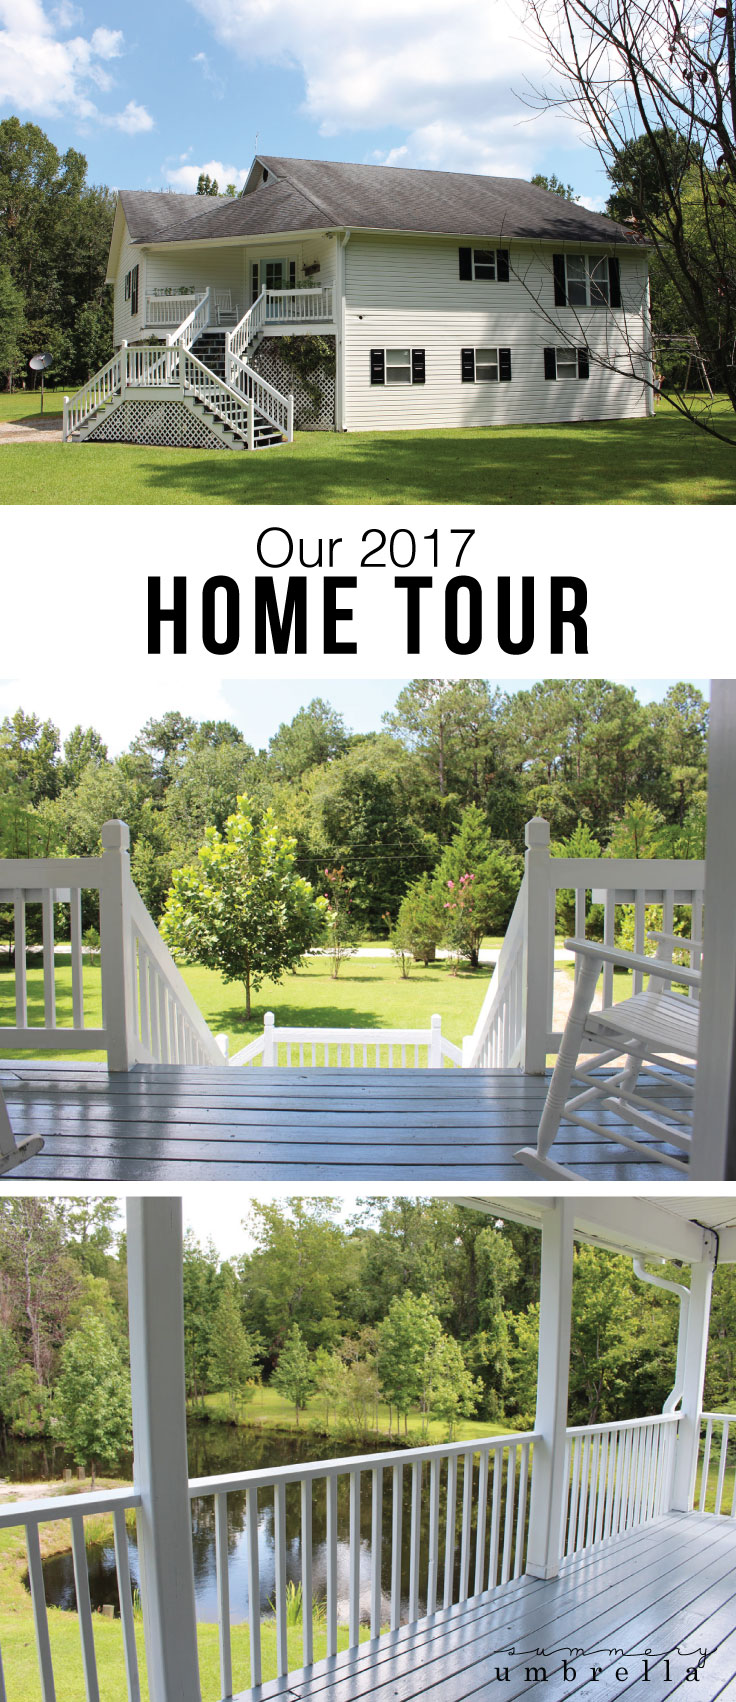 It's time to take one last look at our gorgeous home before I introduce our brand new one. So, let me take you on the before and after home tour where it all began! #homedecor #hometour #homerenovations